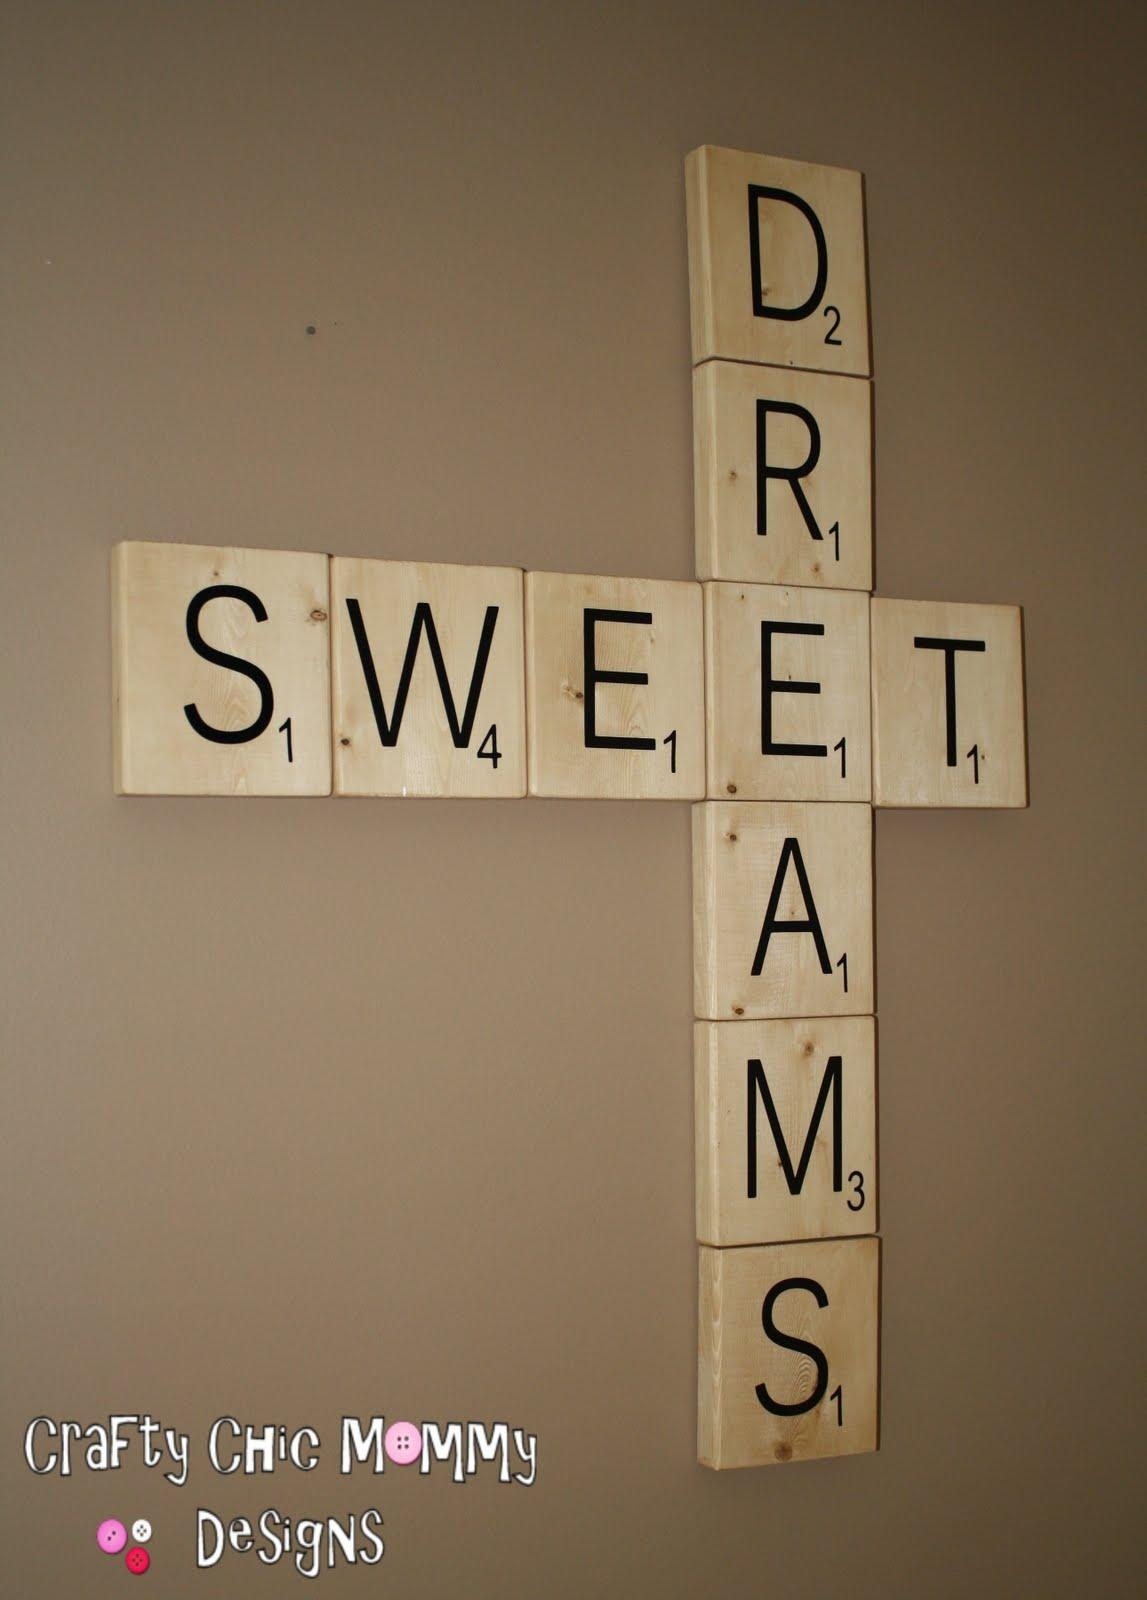 Crafty Chic Mommy: Giant Scrabble Tiles Tutorial With Regard To Scrabble Letter Wall Art (View 10 of 20)